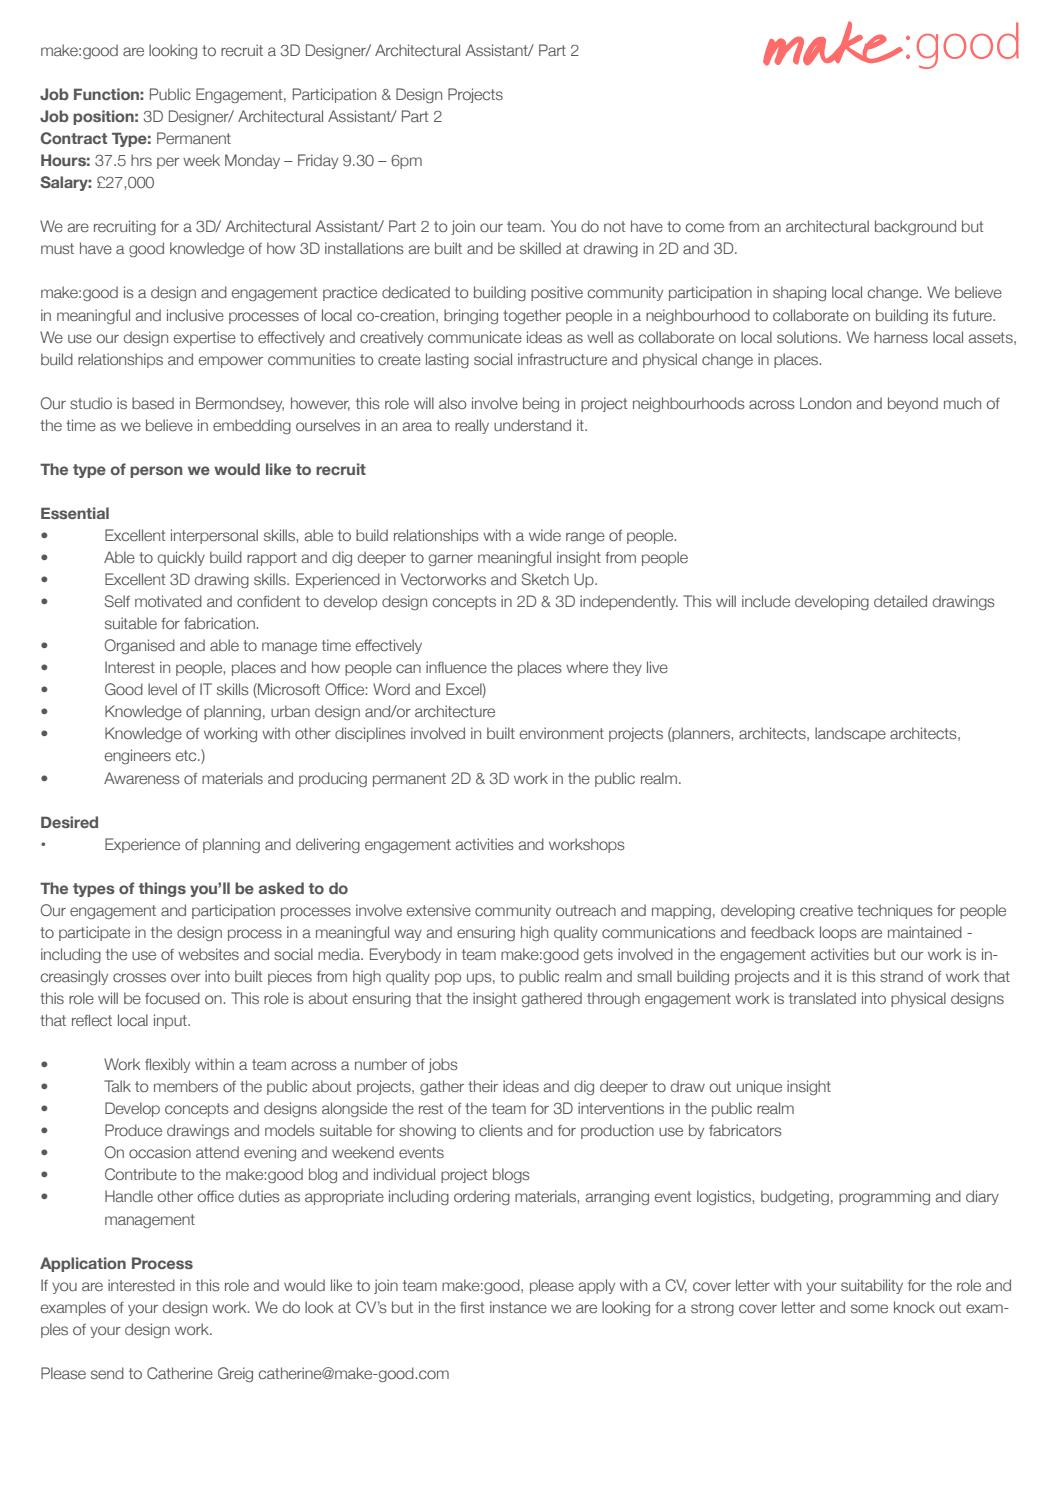 Jd designer job description 2018 by catherine makegood issuu thecheapjerseys Image collections